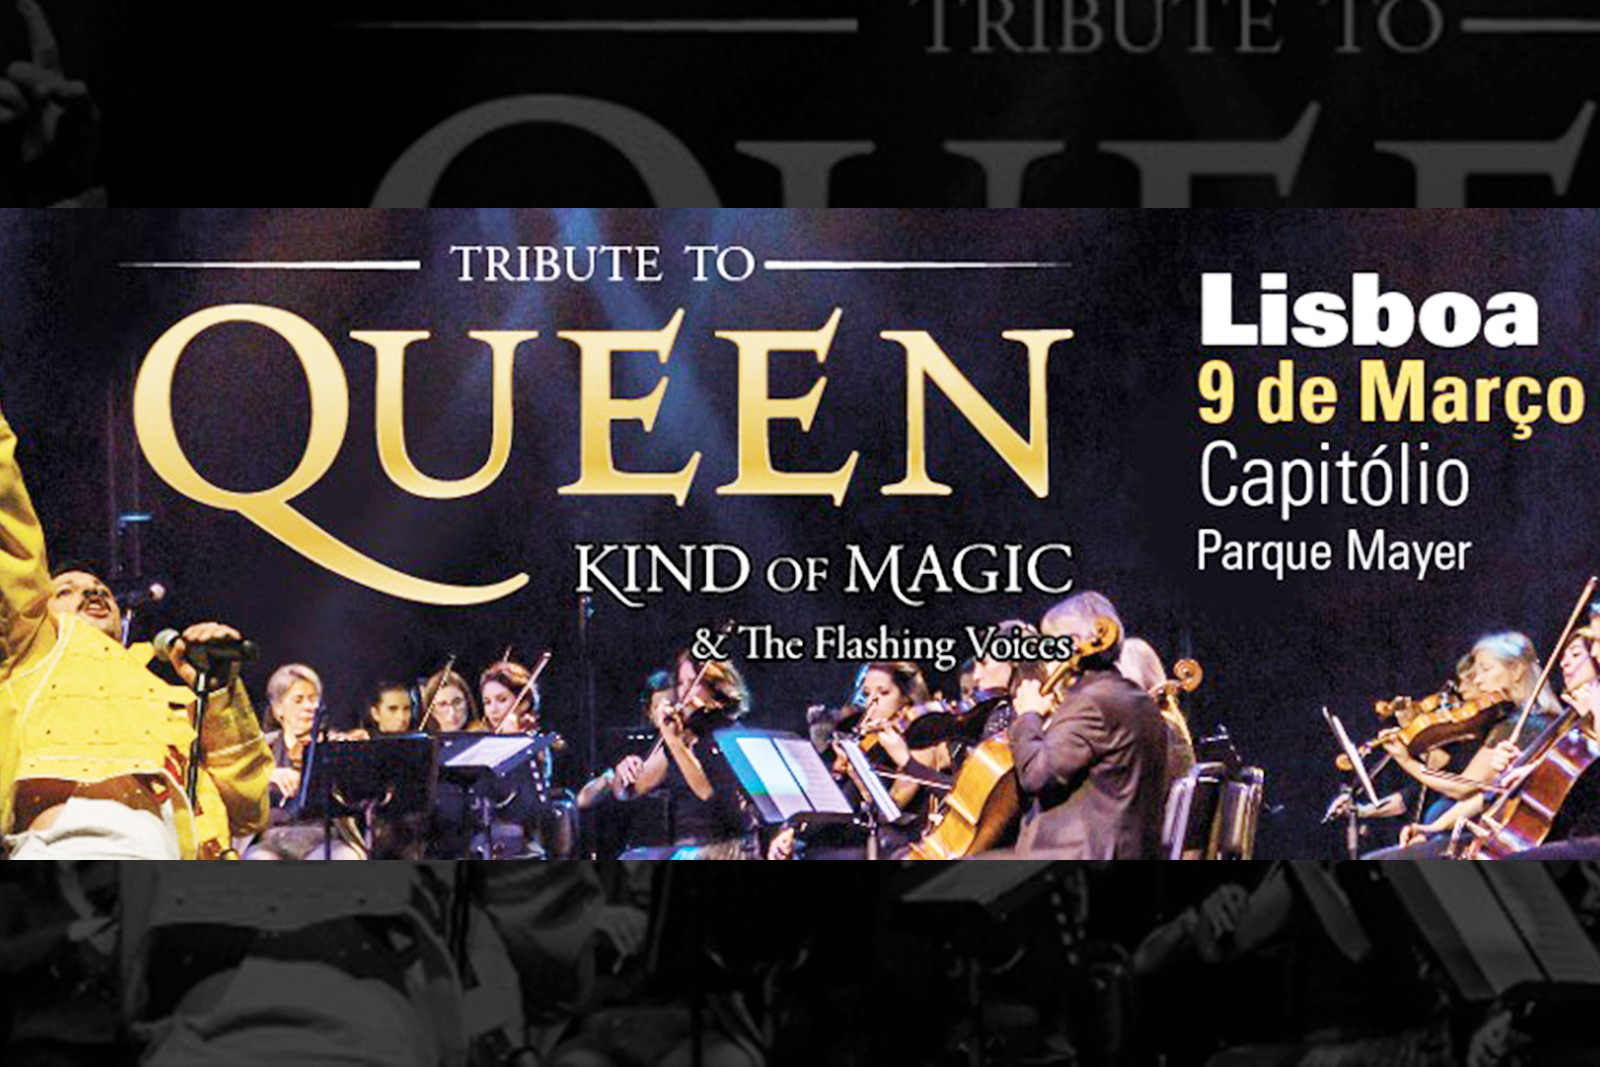 Kind of Magic & Orchestra – Queen Tribute